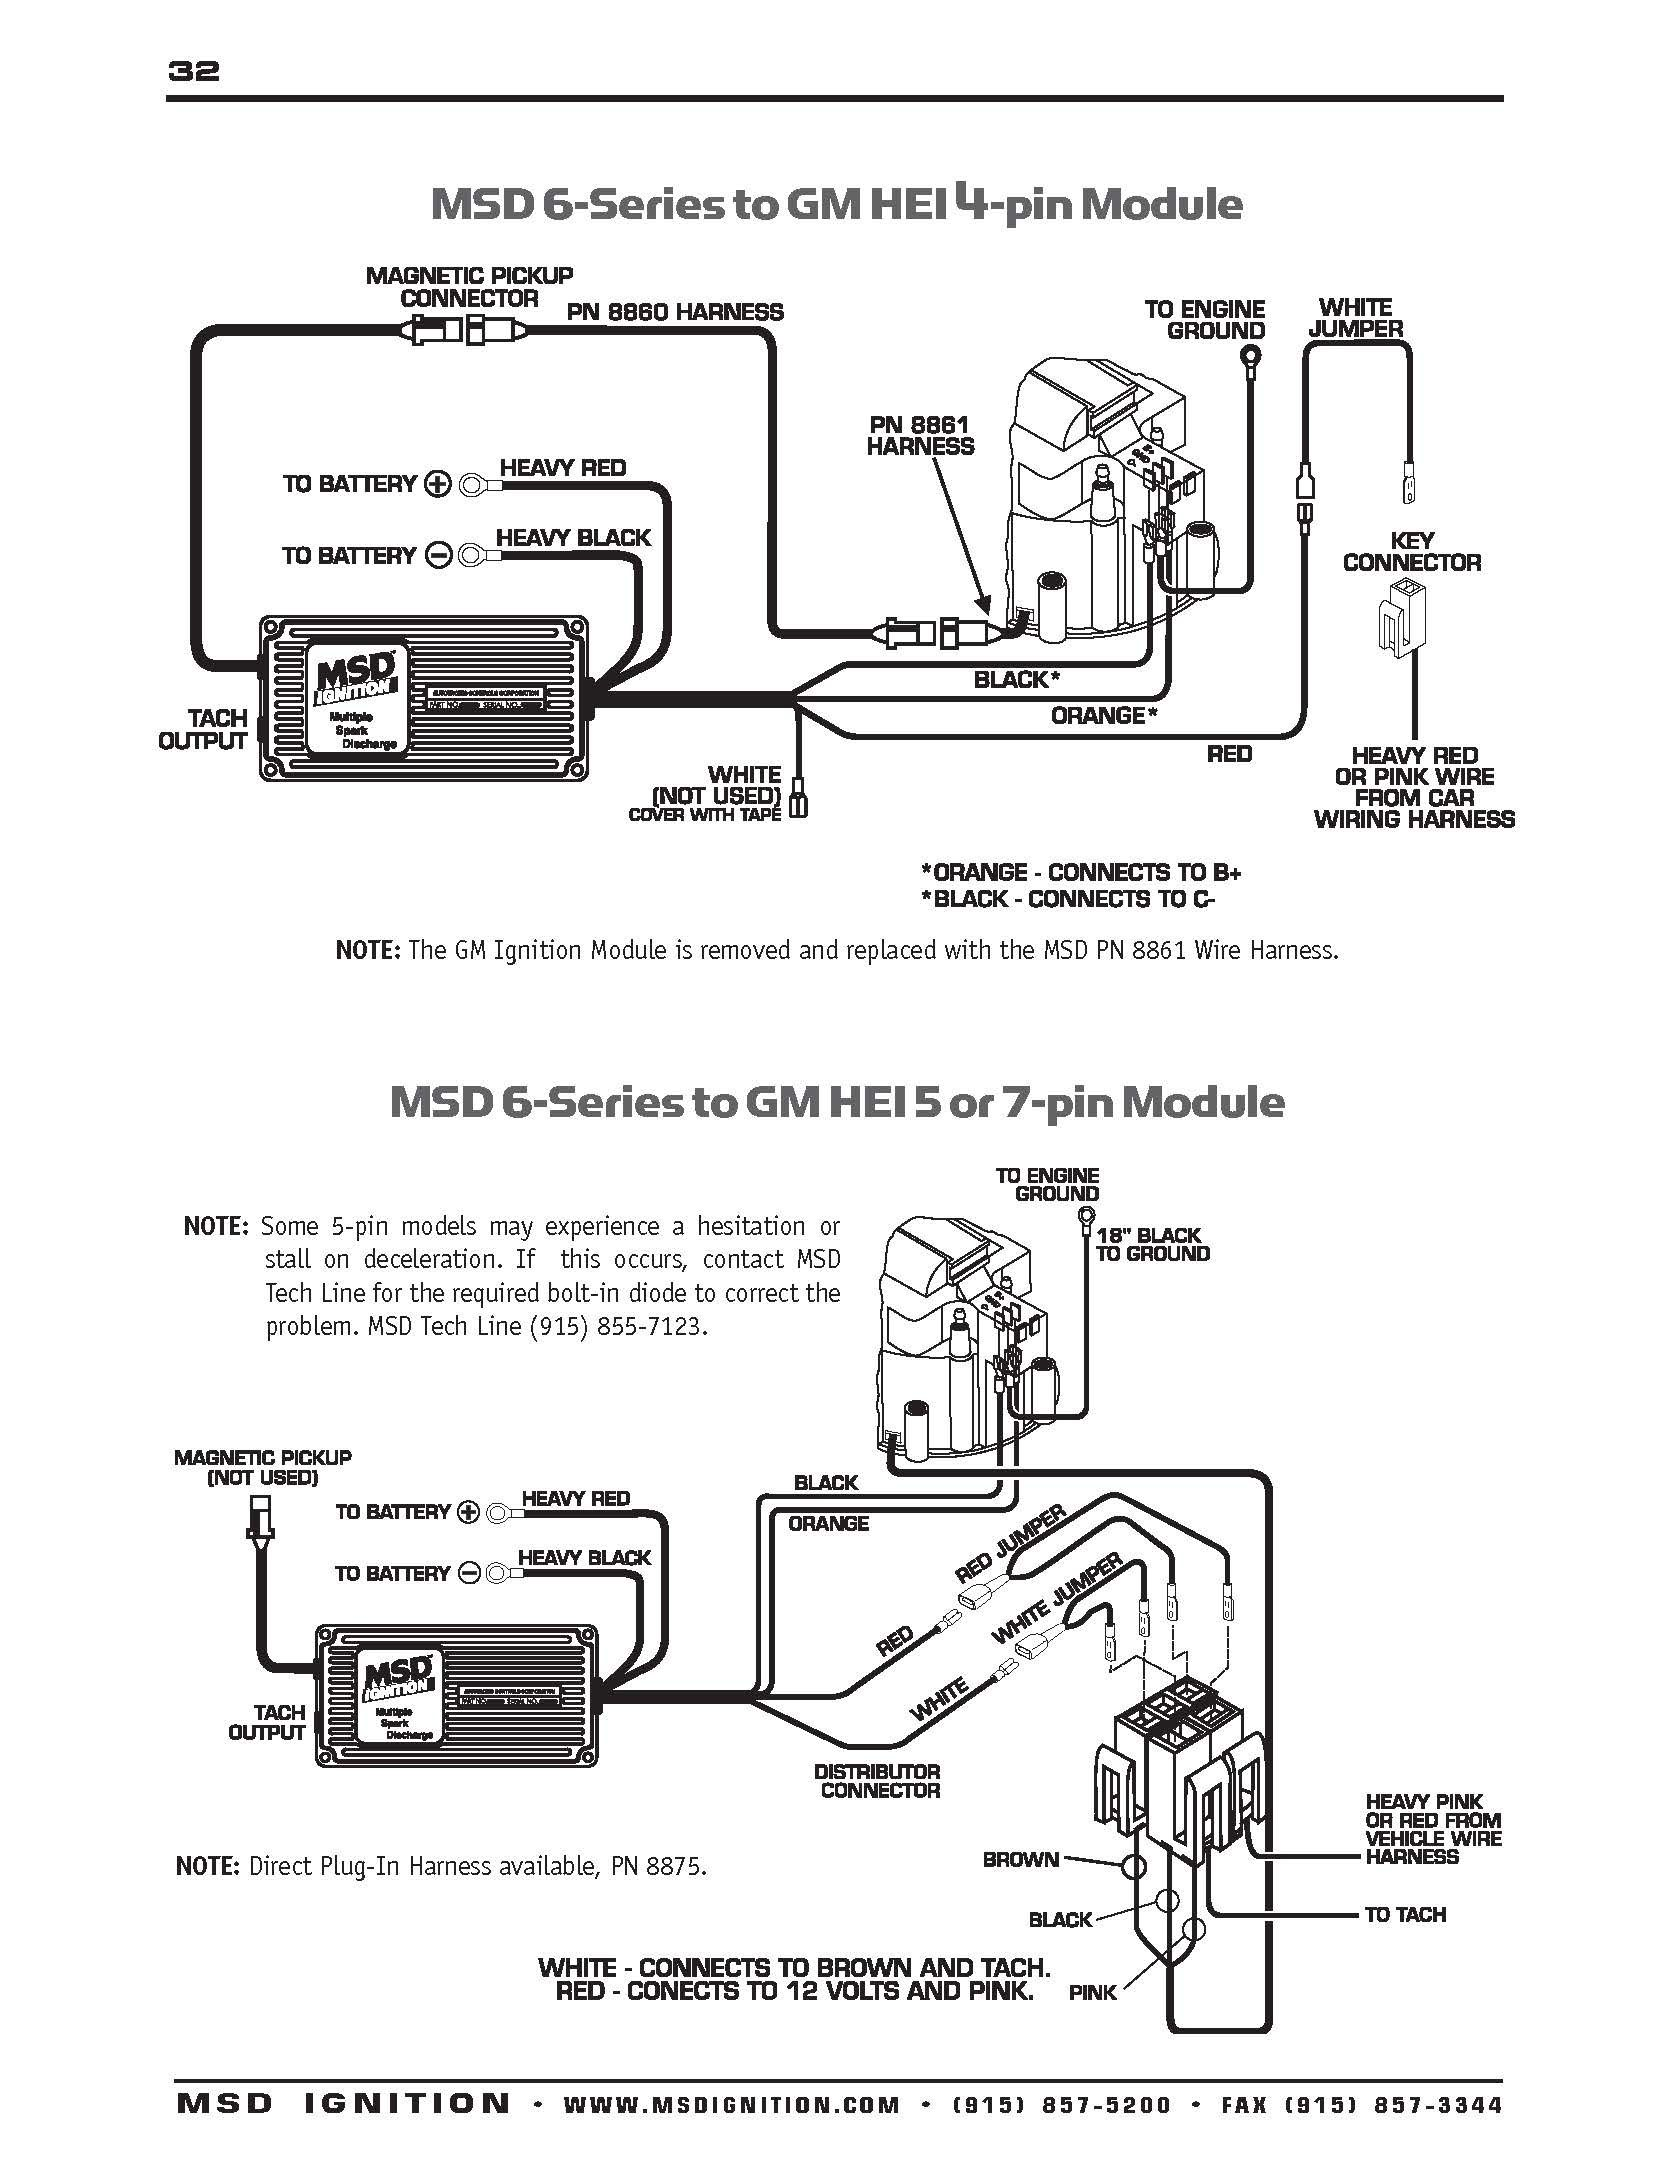 hight resolution of msd ignition wiring diagrams 1966 chevelle pinterest 1966 chevelle color wiring diagram wiring diagram for 1965